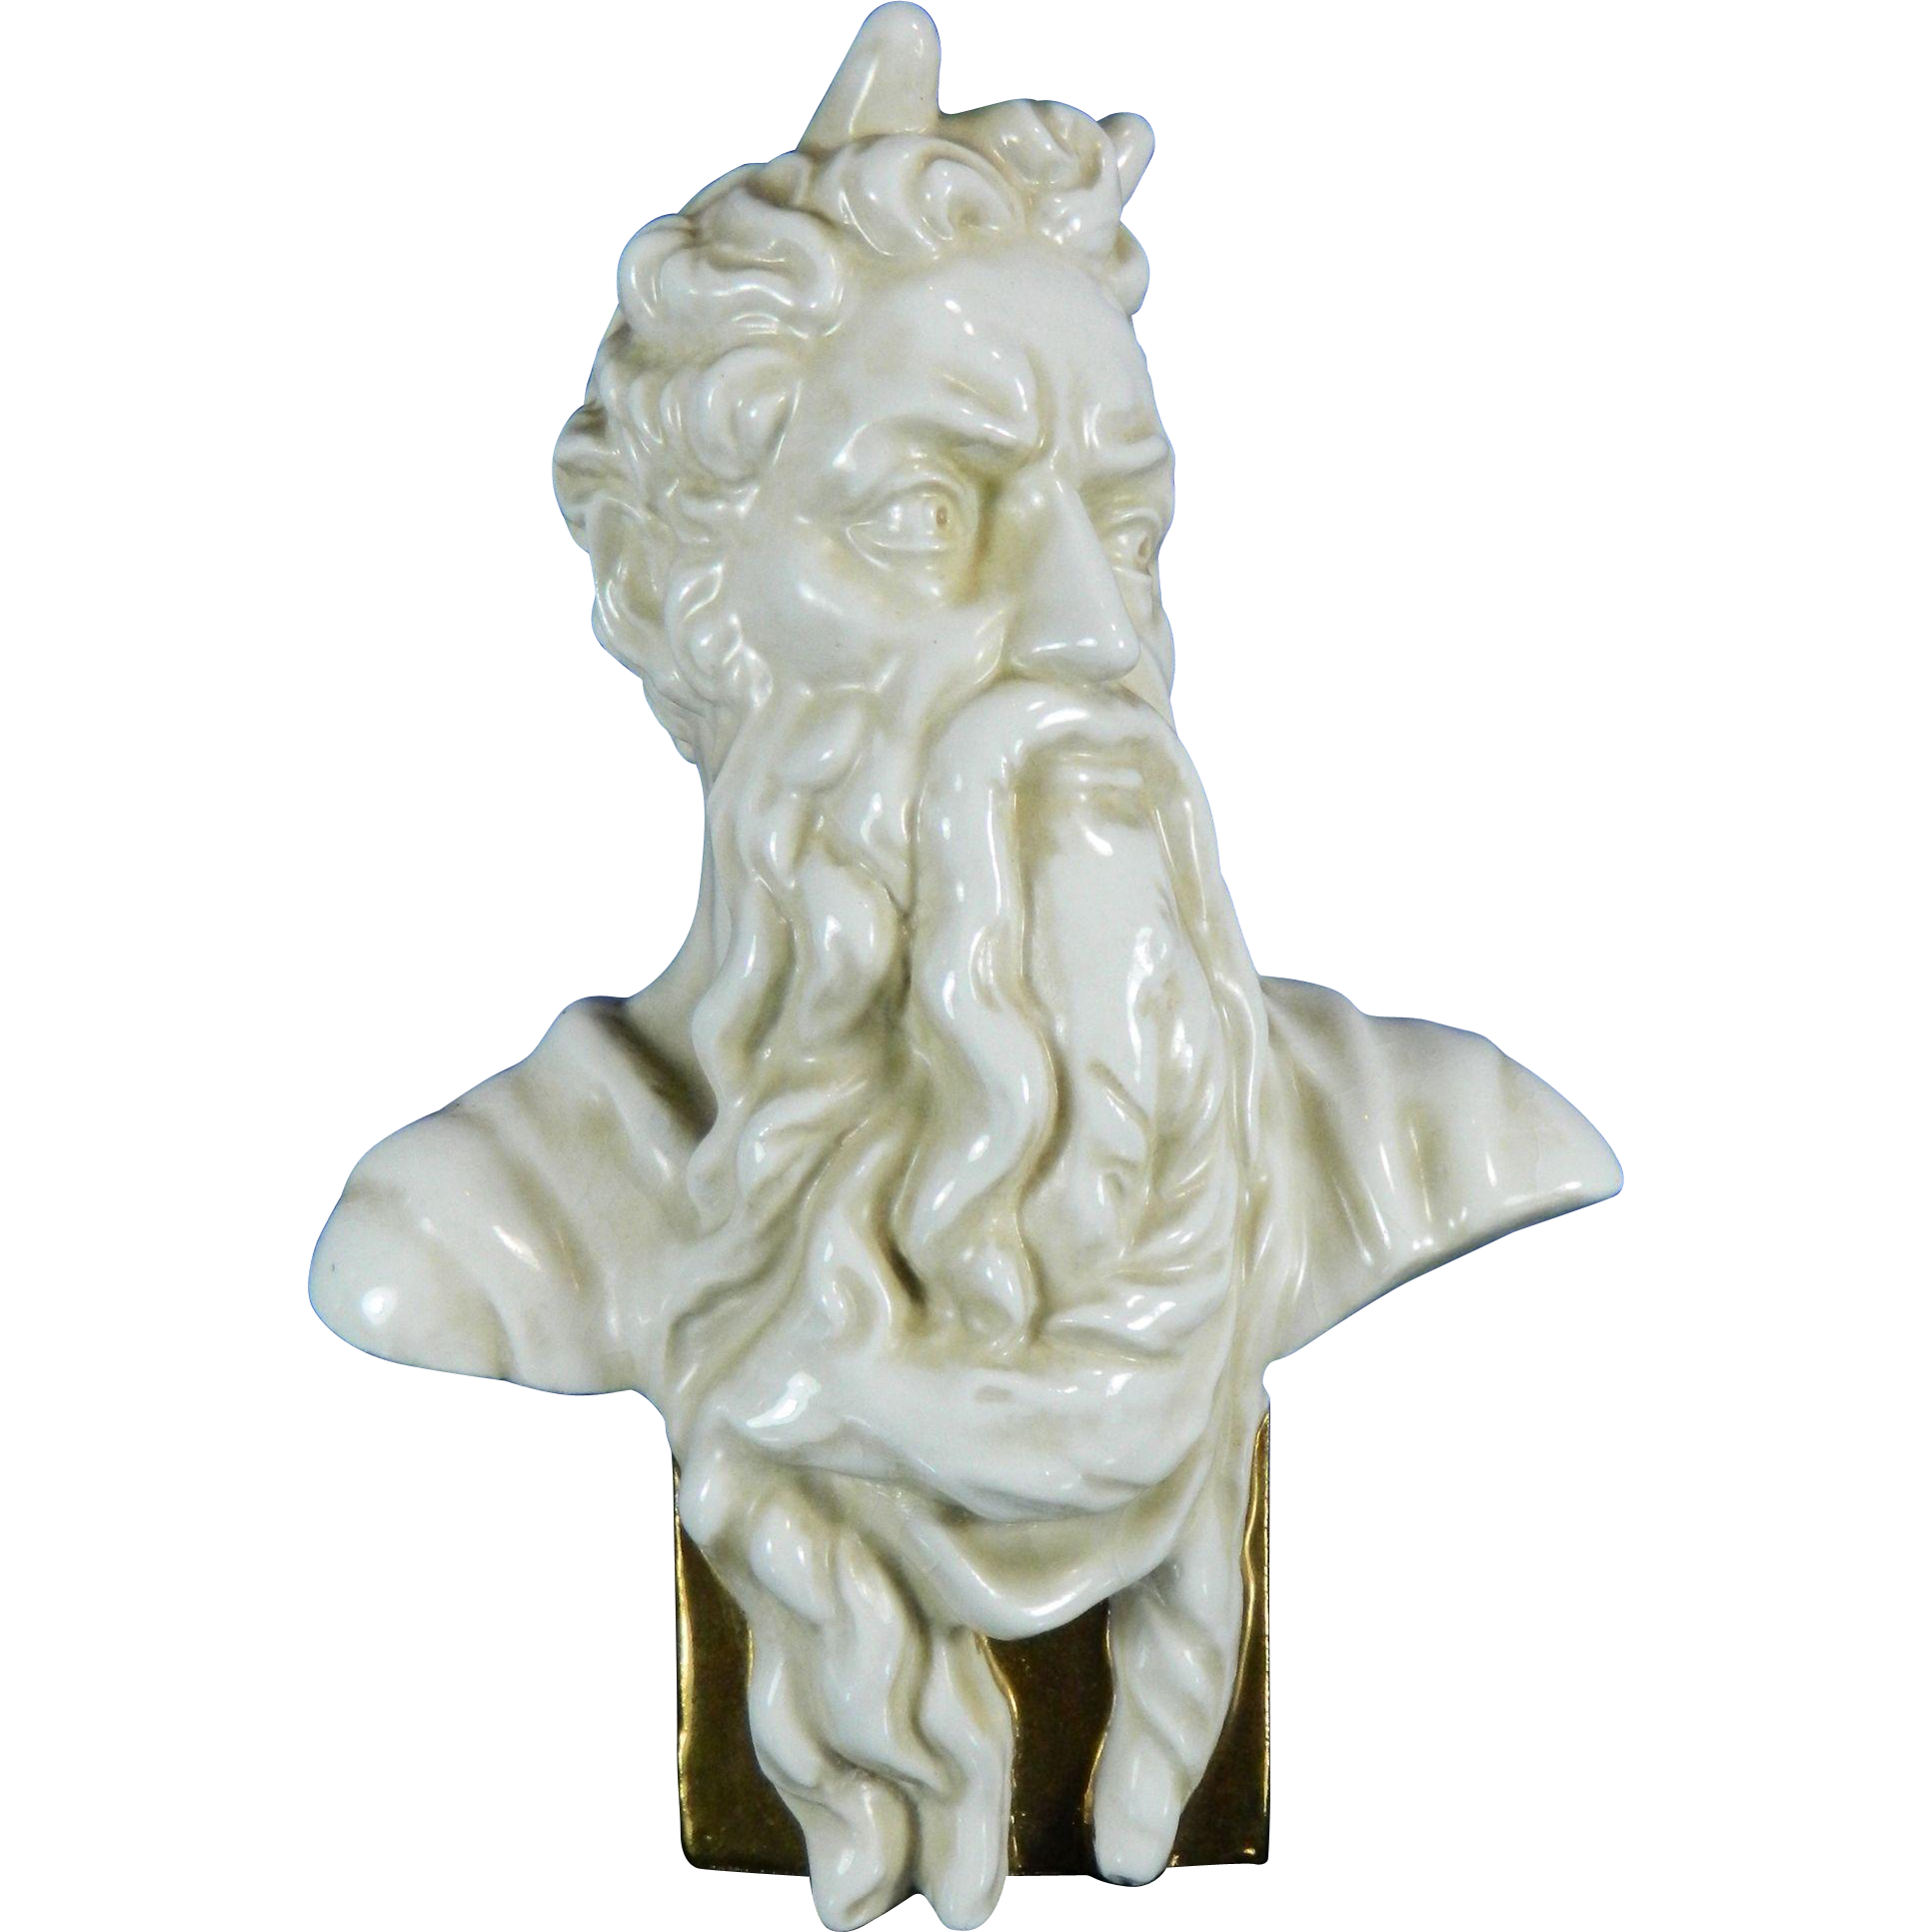 Png moses statue clear background. Vintage white porcelain bust